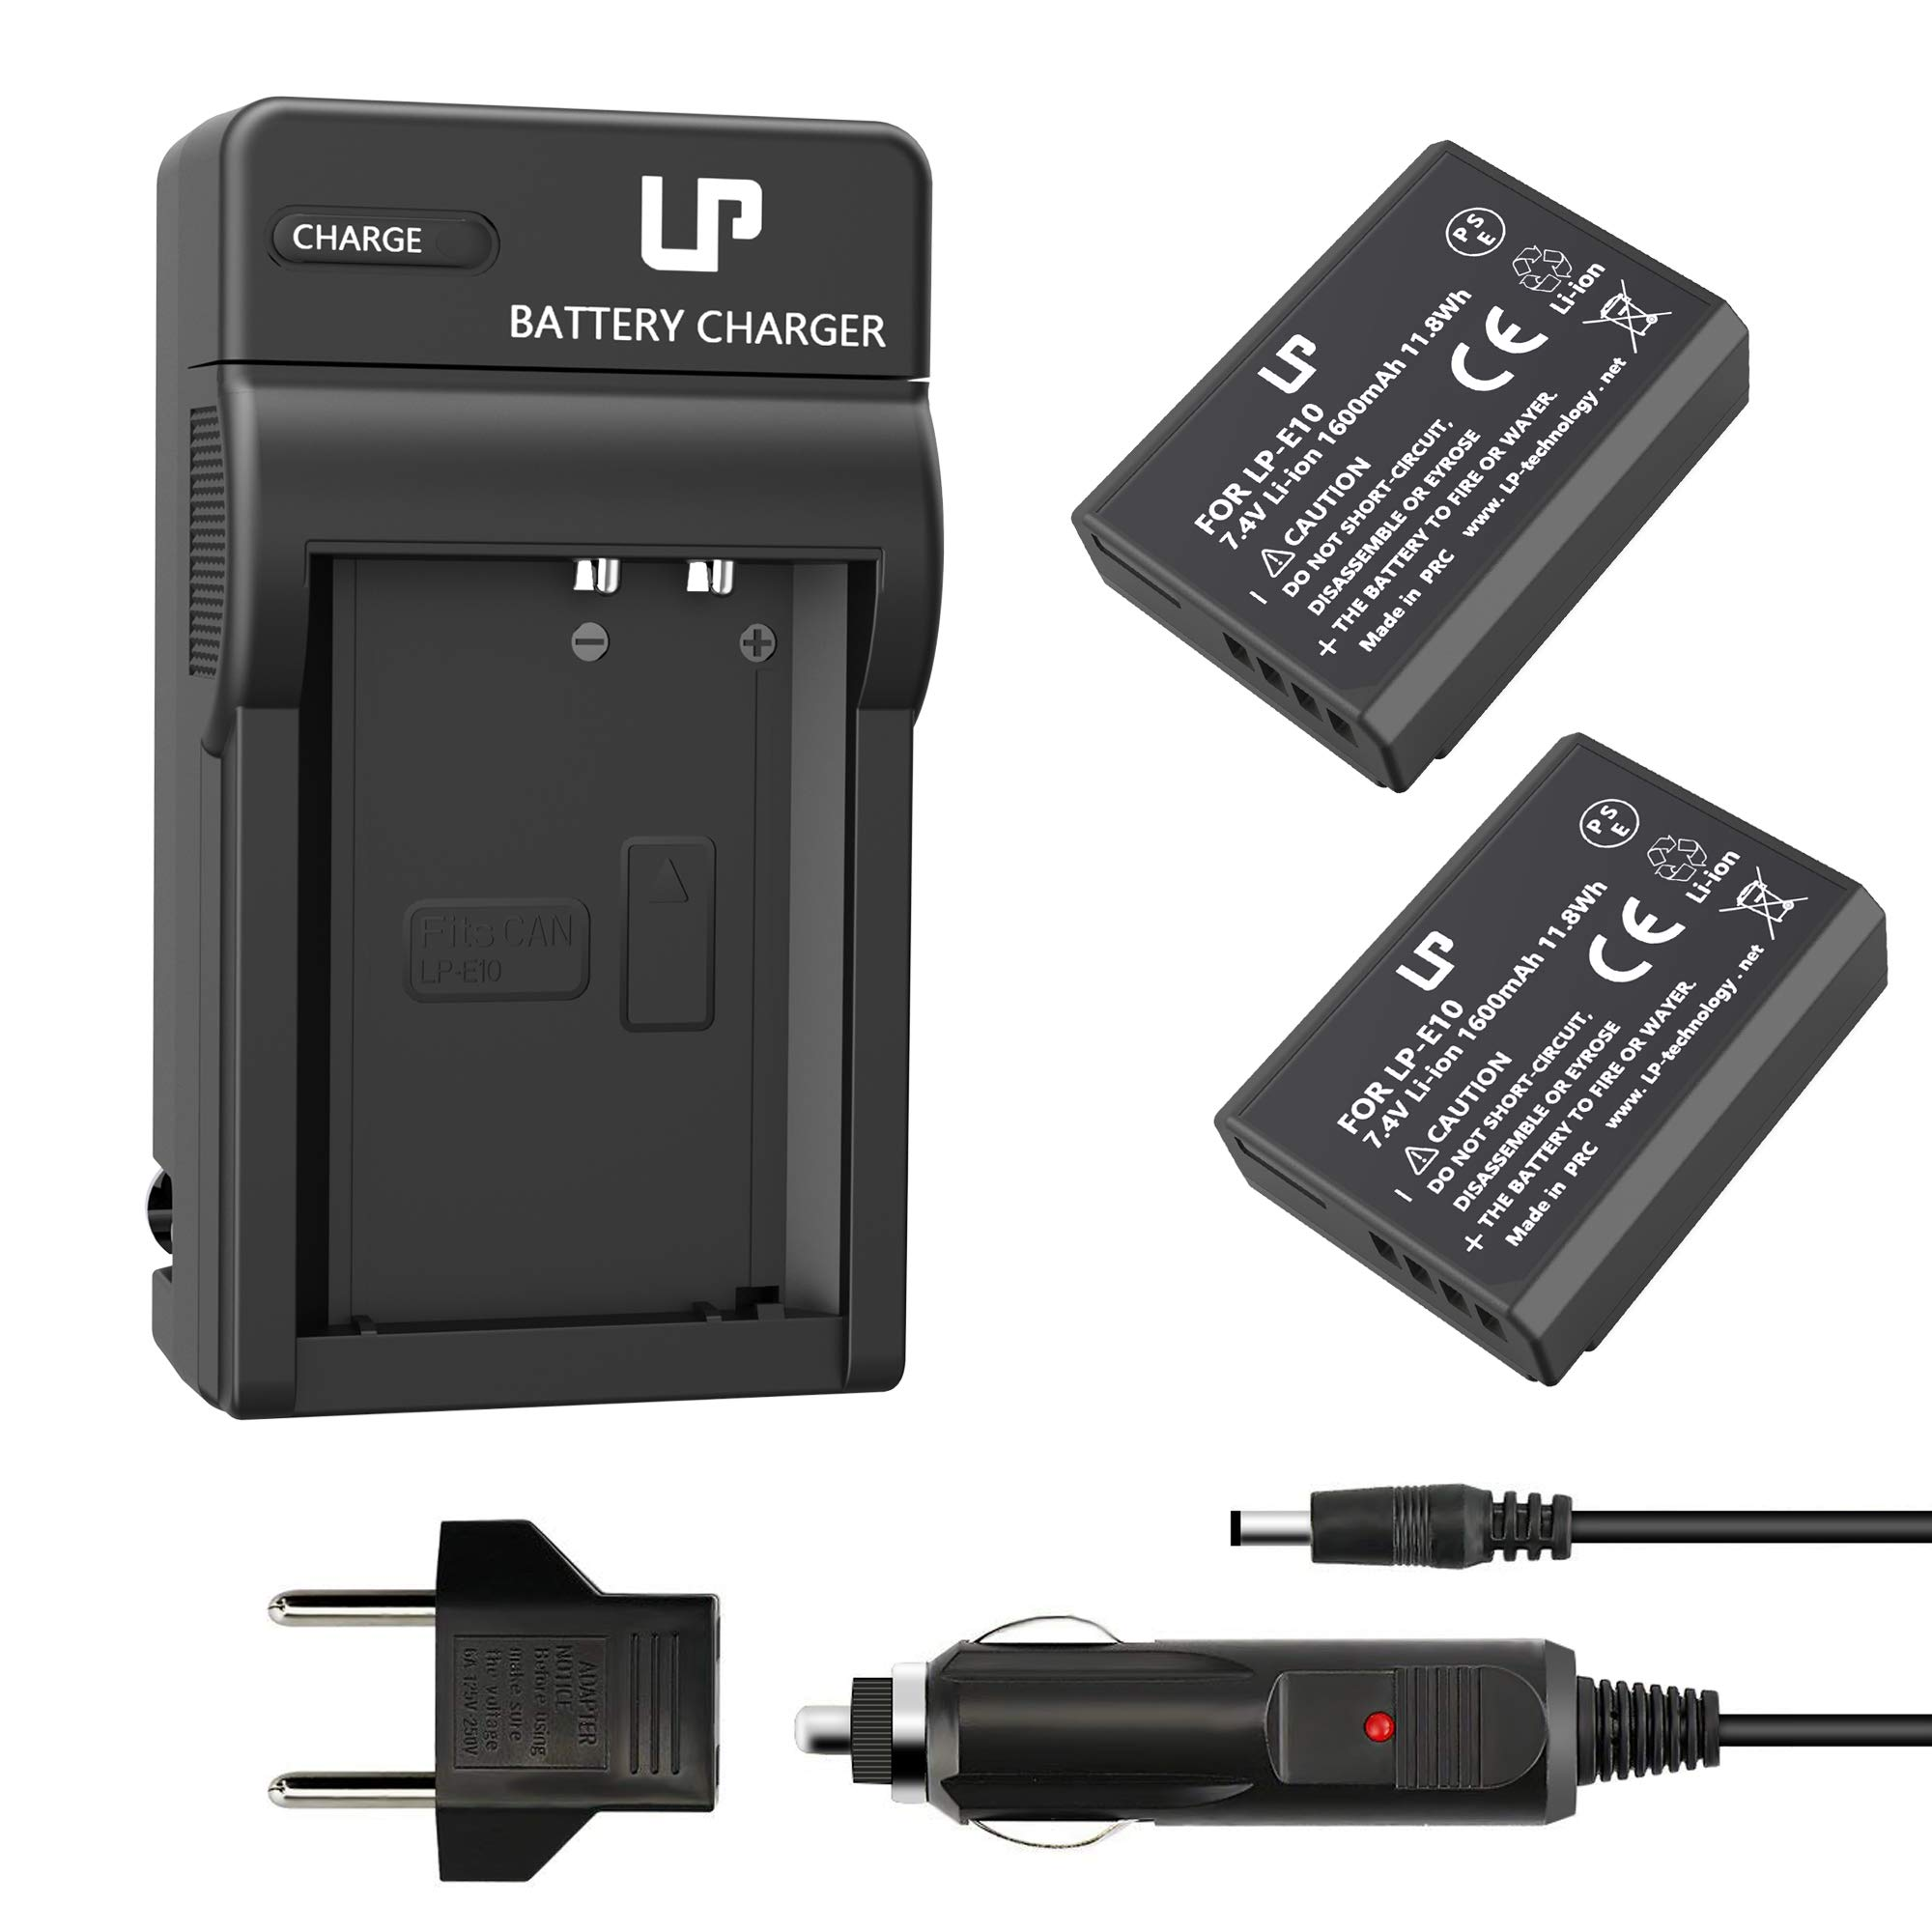 LP LP-E10 Battery Charger Set, 2-Pack Battery & Charger, Compatible with Canon T3, T5, T6, T7, T100, 4000D & More (Not for T3i T5i T6i T6s T7i) by LP